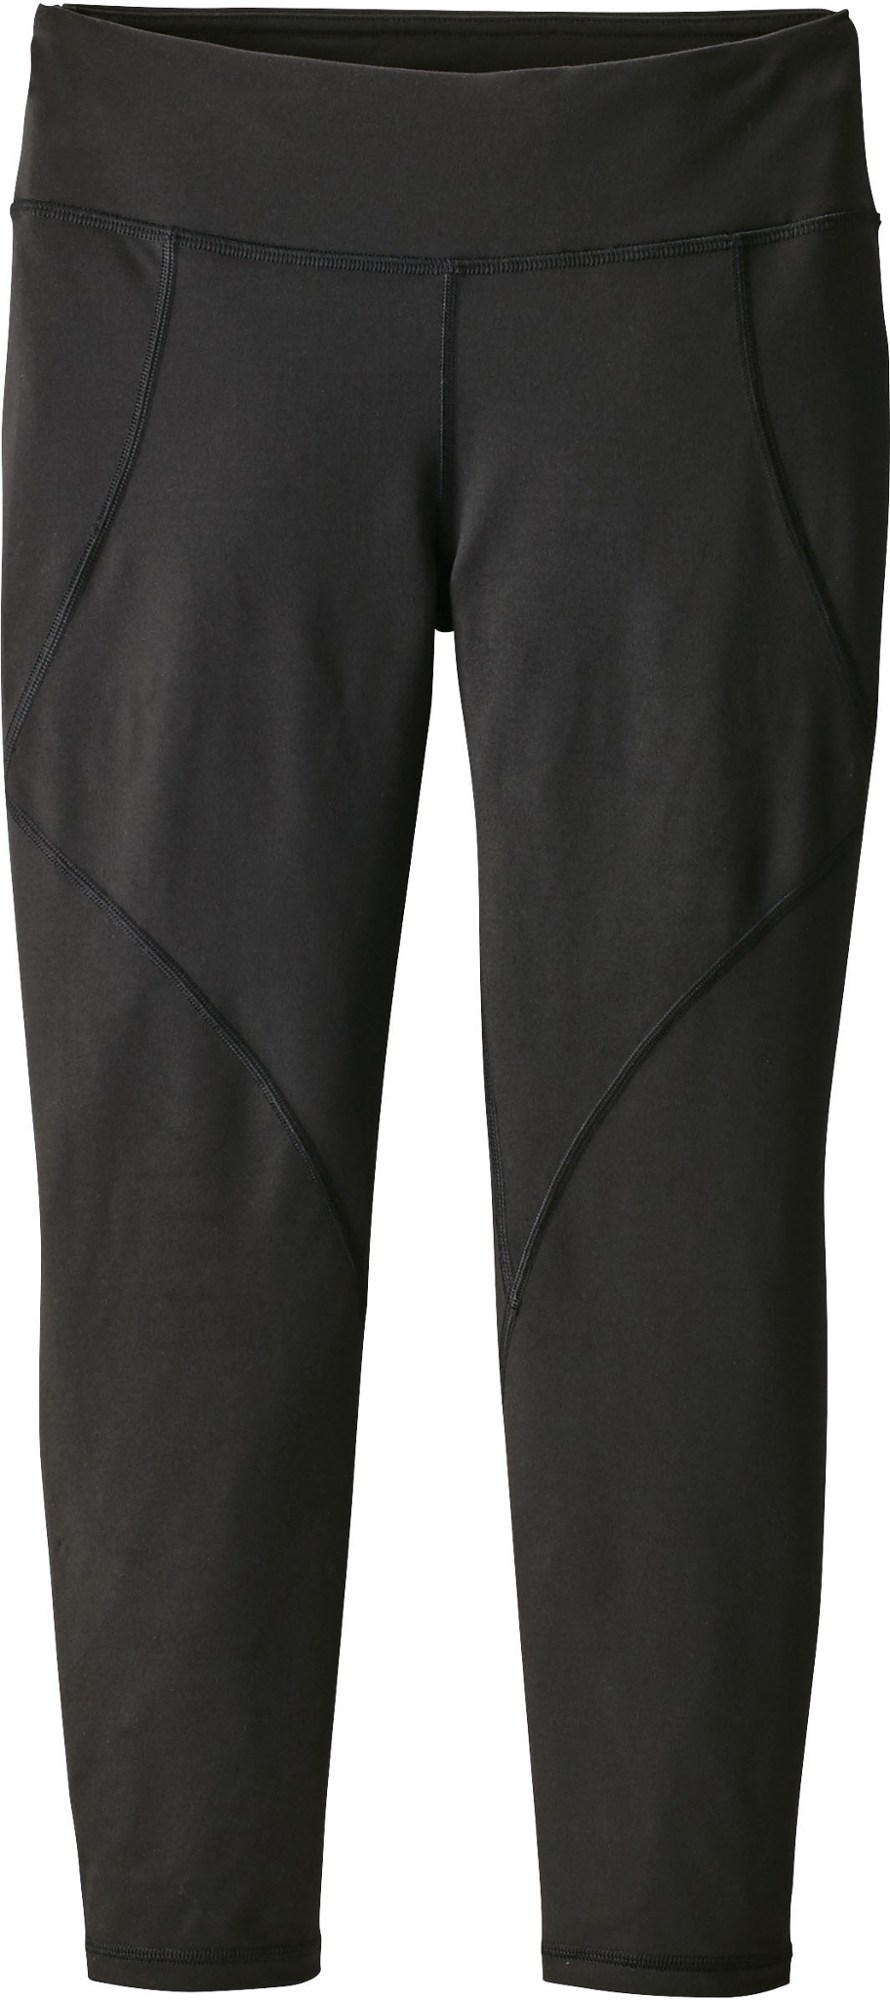 Patagonia Centered Crop Tights - Women's